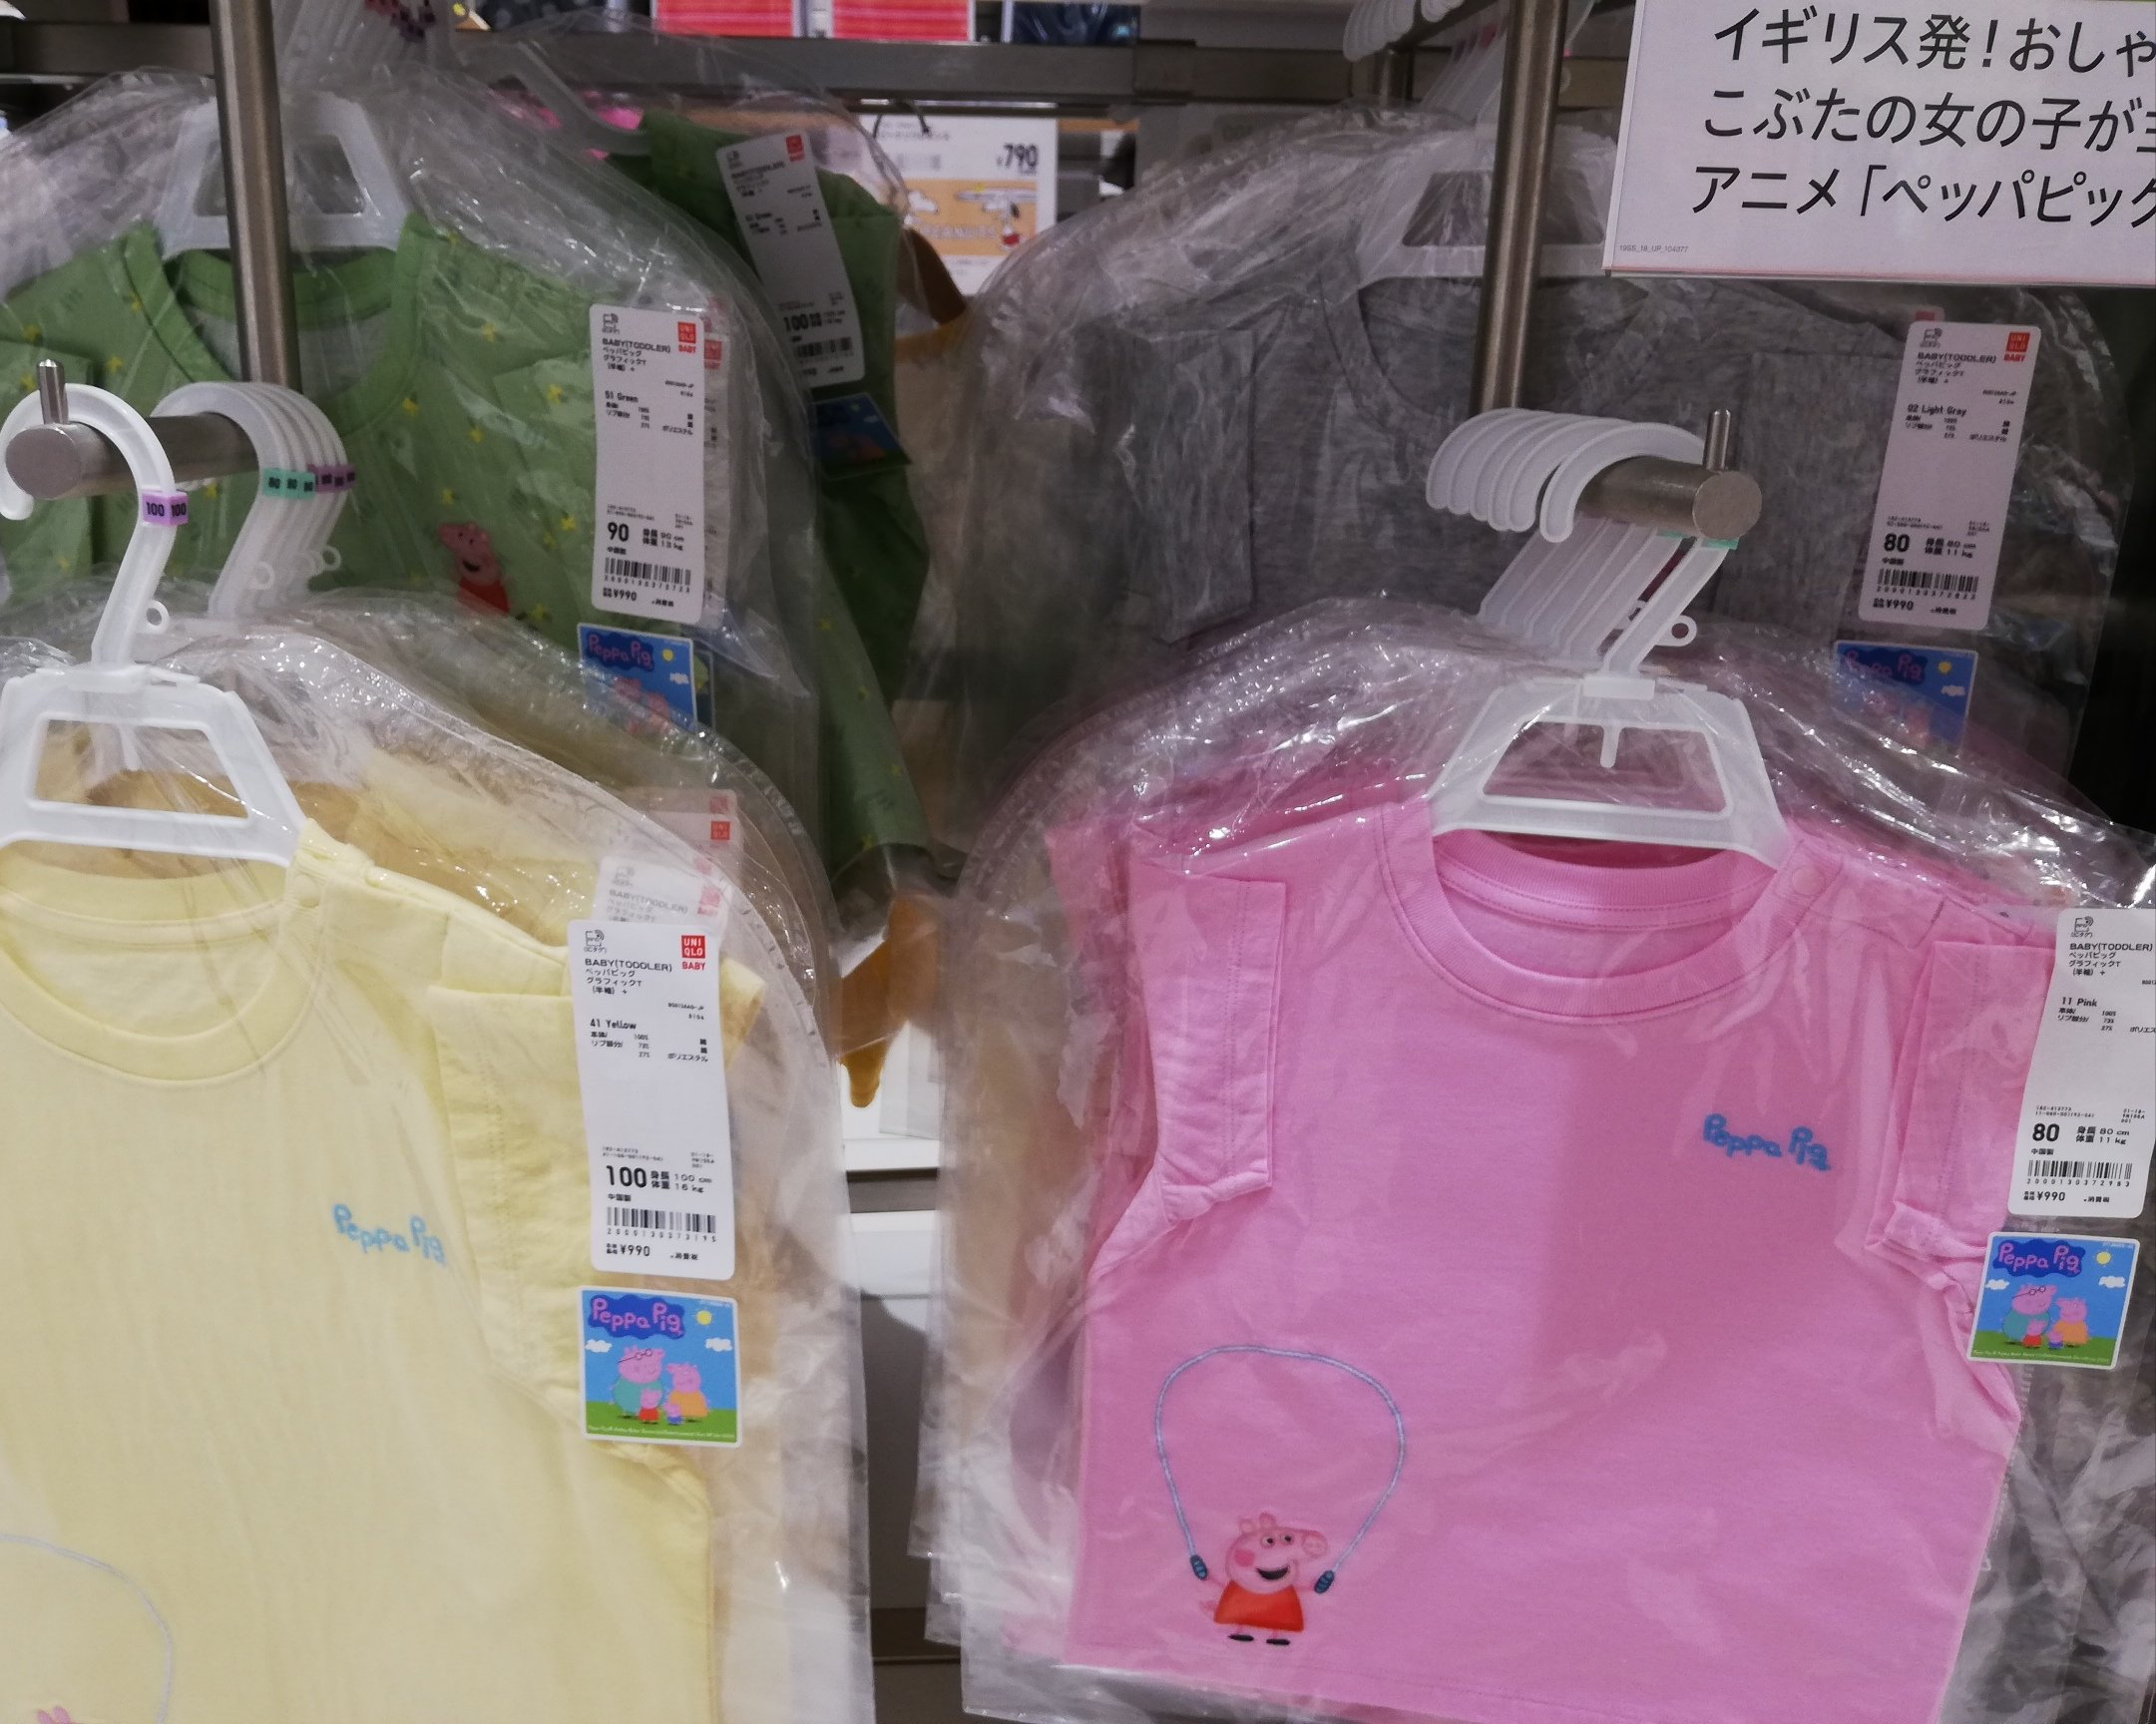 peppa pig uniqlo t-shirts